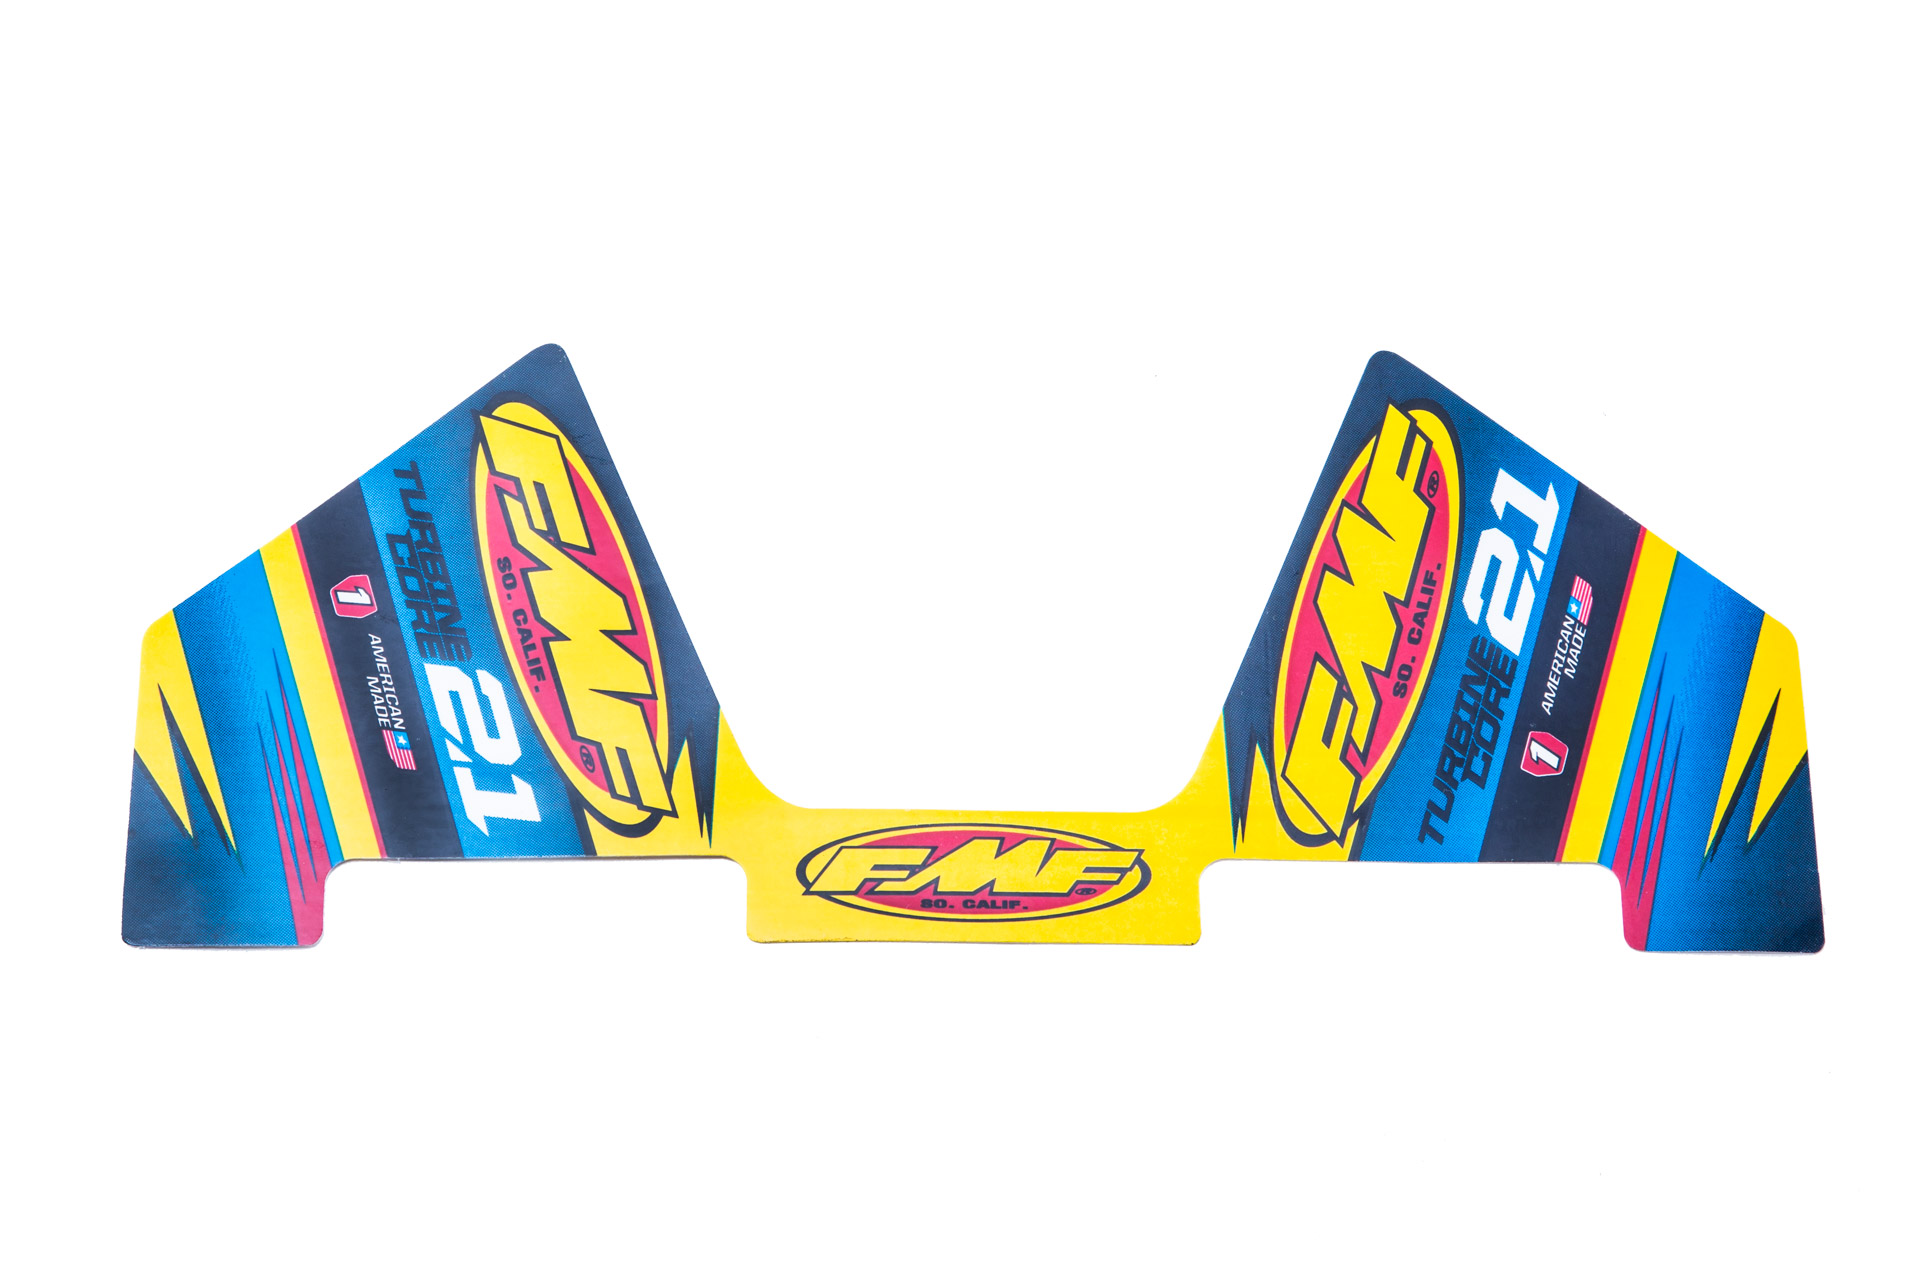 FMF TURBINECORE 2.1 WRAP MYLAR DECAL REPLACEMENT